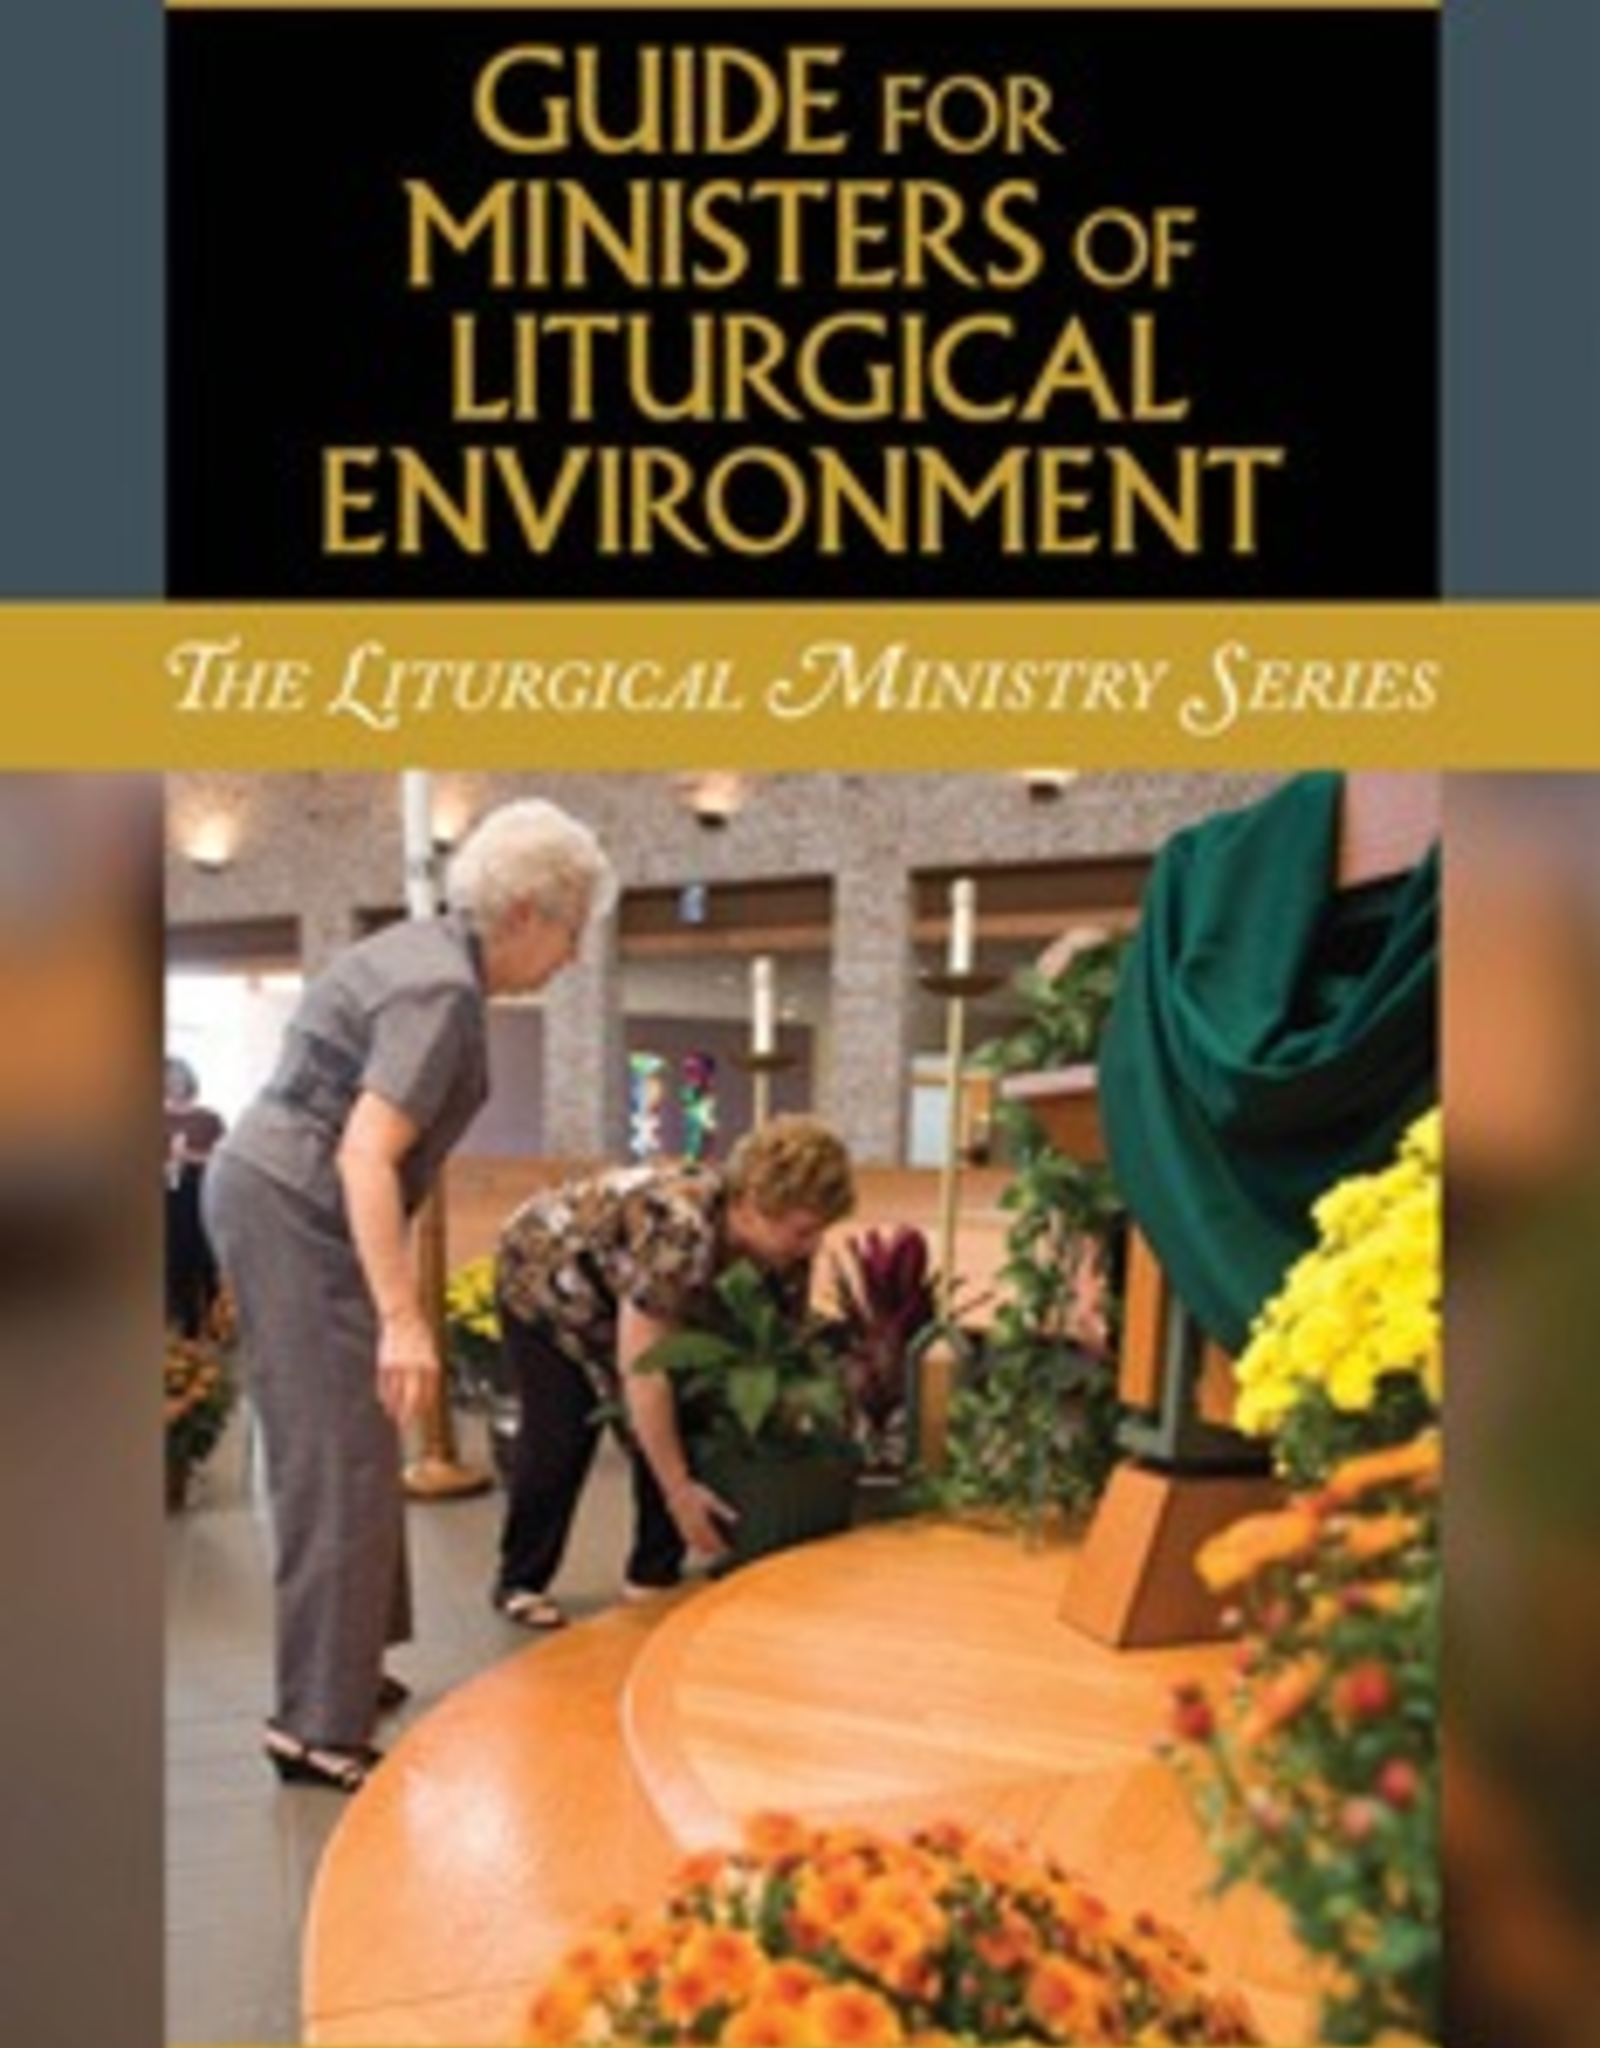 Liturgical Training Press Guide for Ministers of Liturgical Environment, by Paul Turner and Mary Patricia Storms